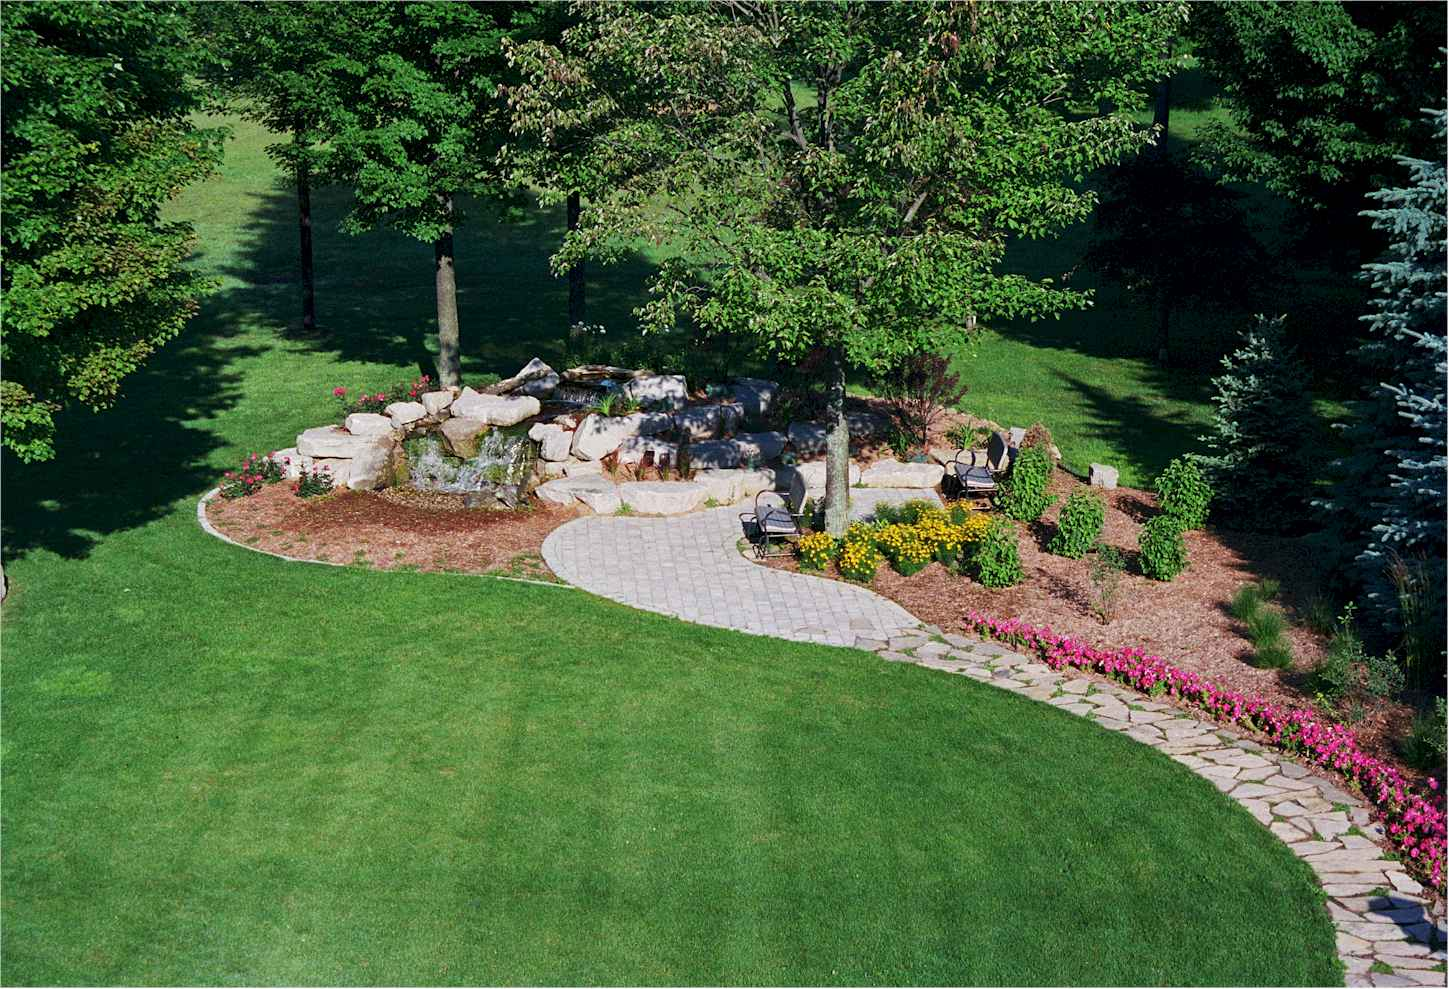 Landscaping Ideas to Wow the Neighbors